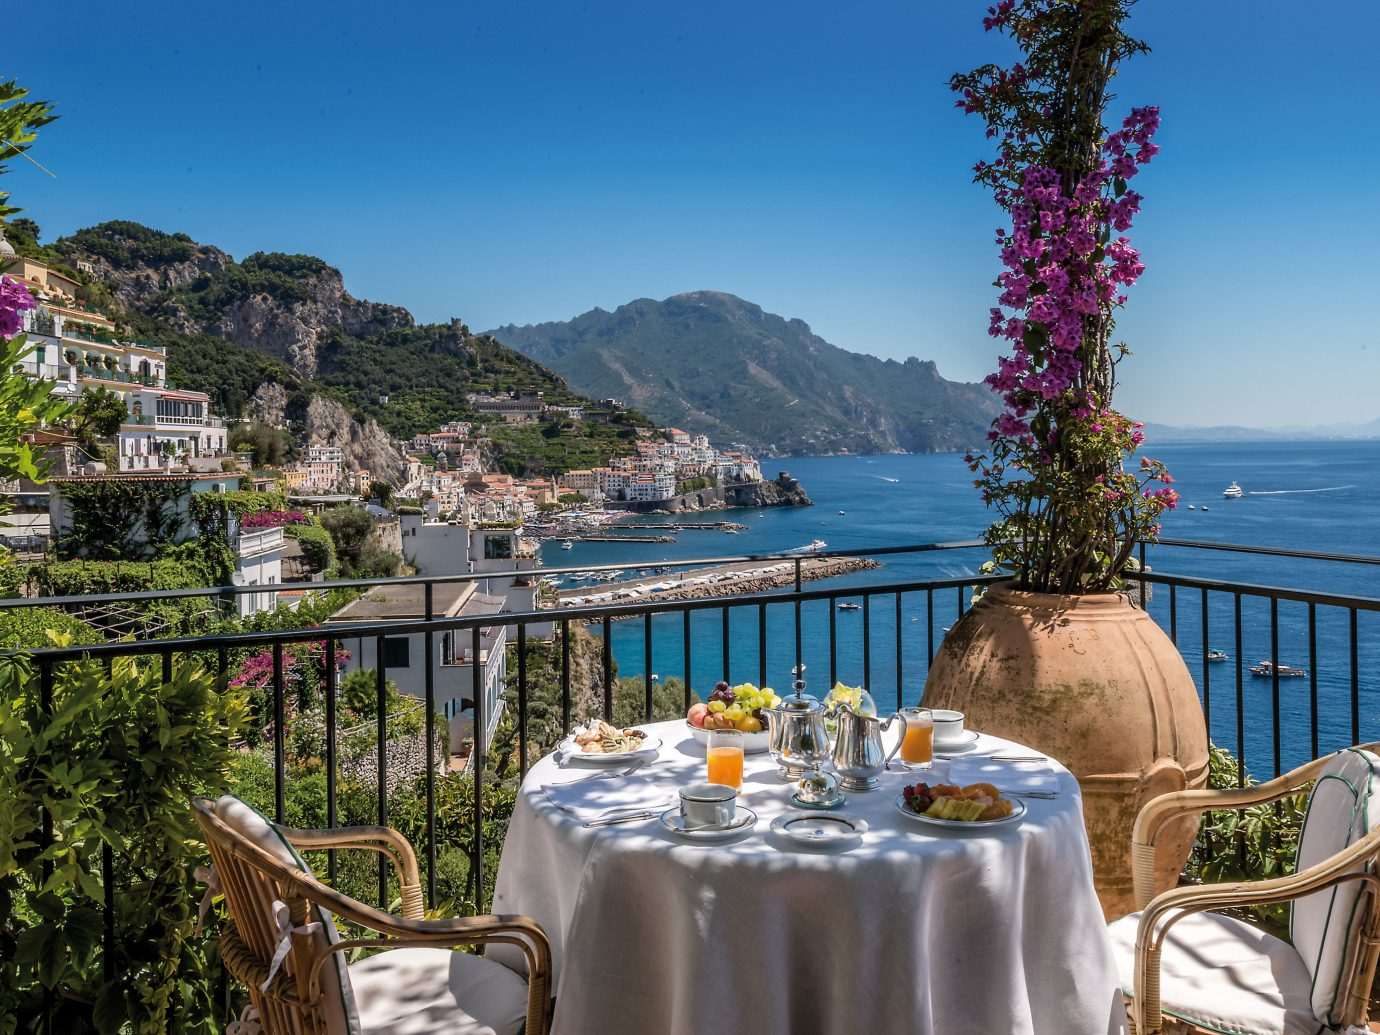 Honeymoon Hotels Luxury Travel Romance tree table sky outdoor water plant Sea vacation tourism Resort real estate leisure landscape mountain overlooking meal